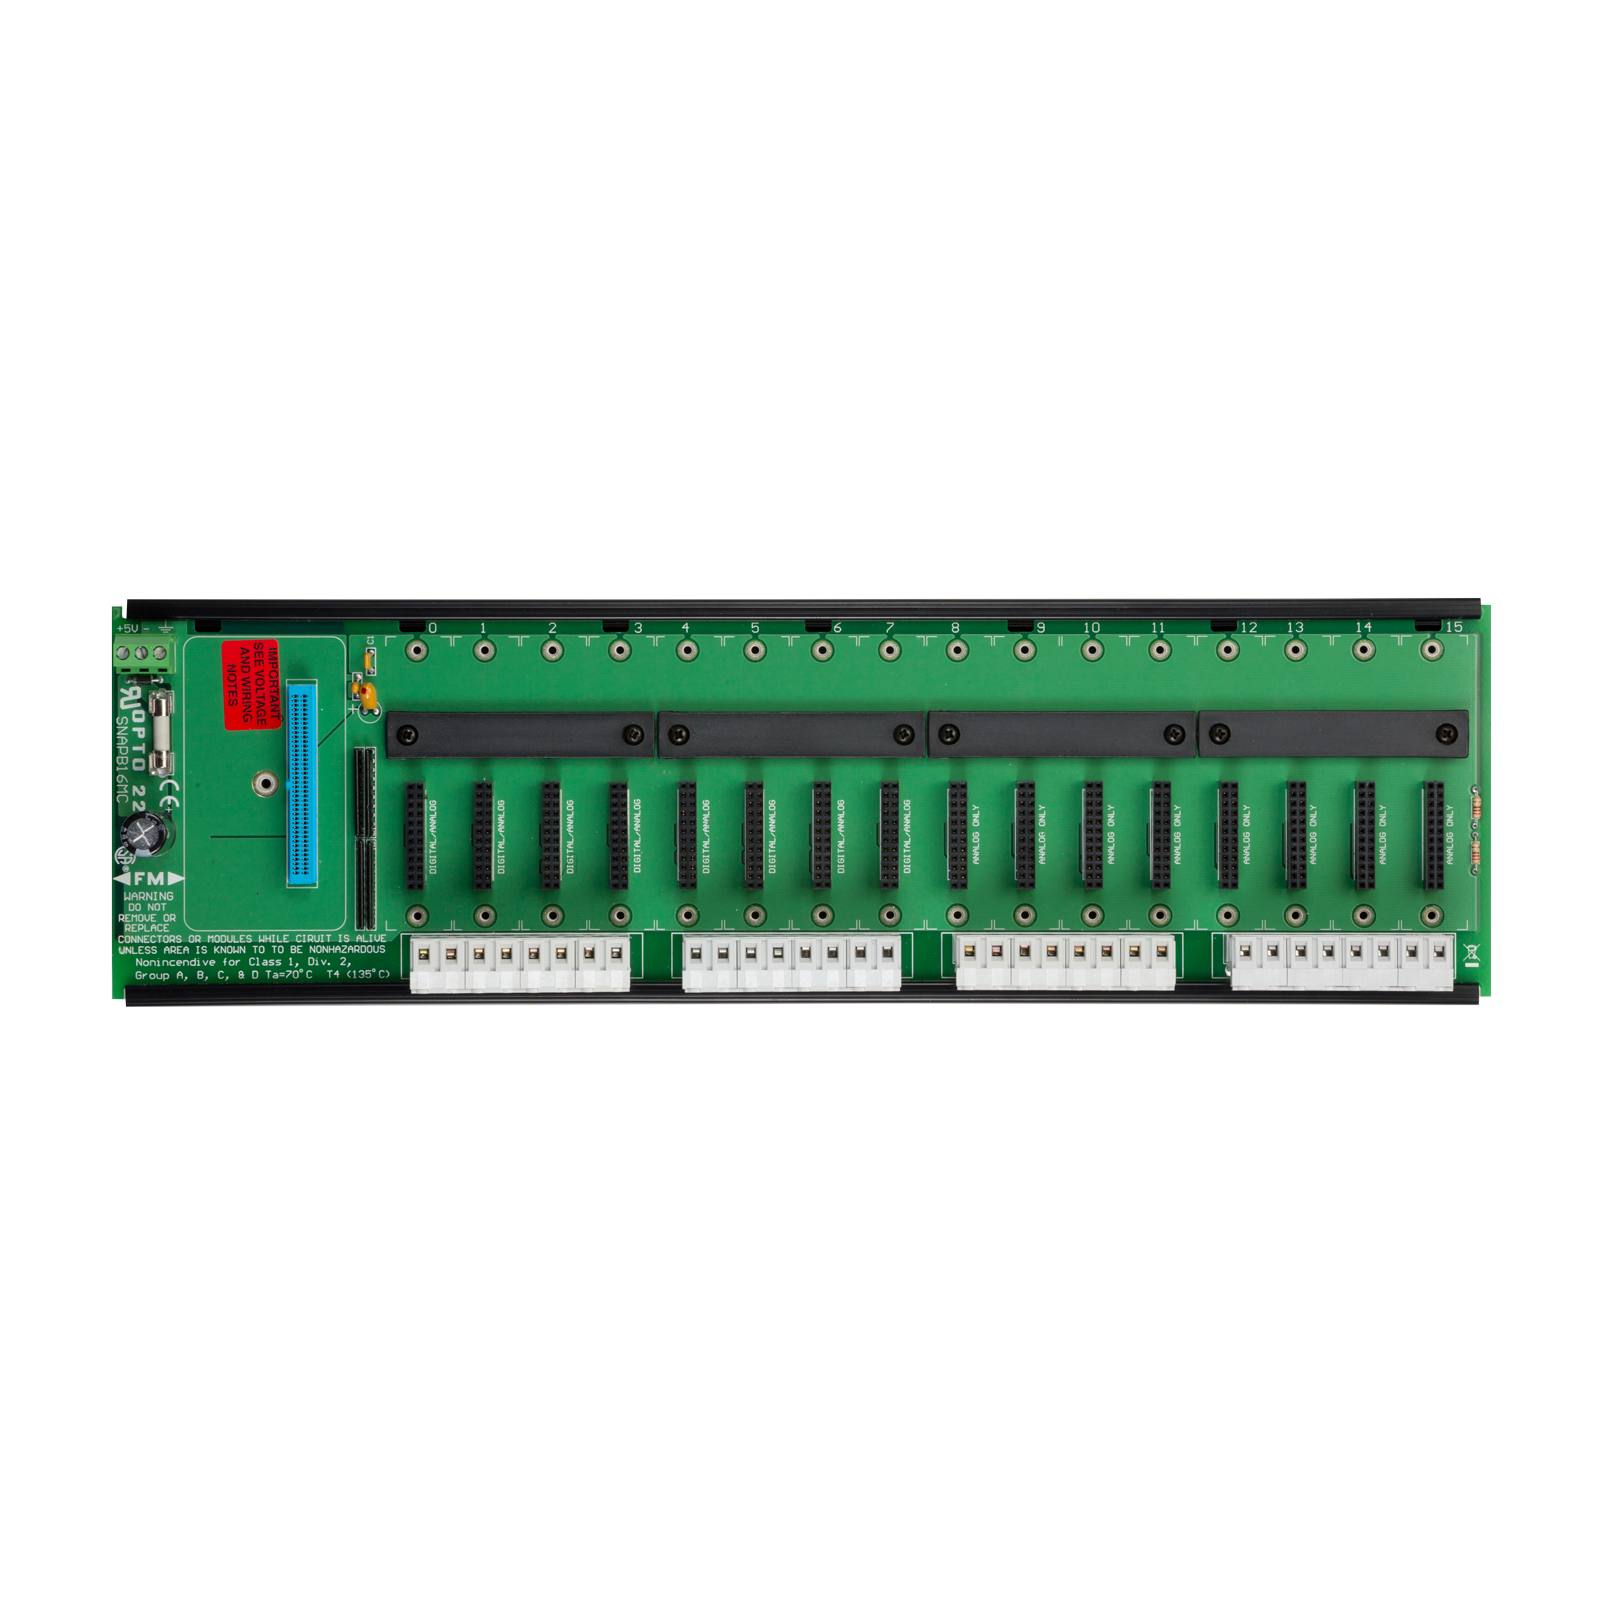 Opto22 Snap B16mc P B Series 16 Module Rack With Extra Ifm Wiring Block Previous